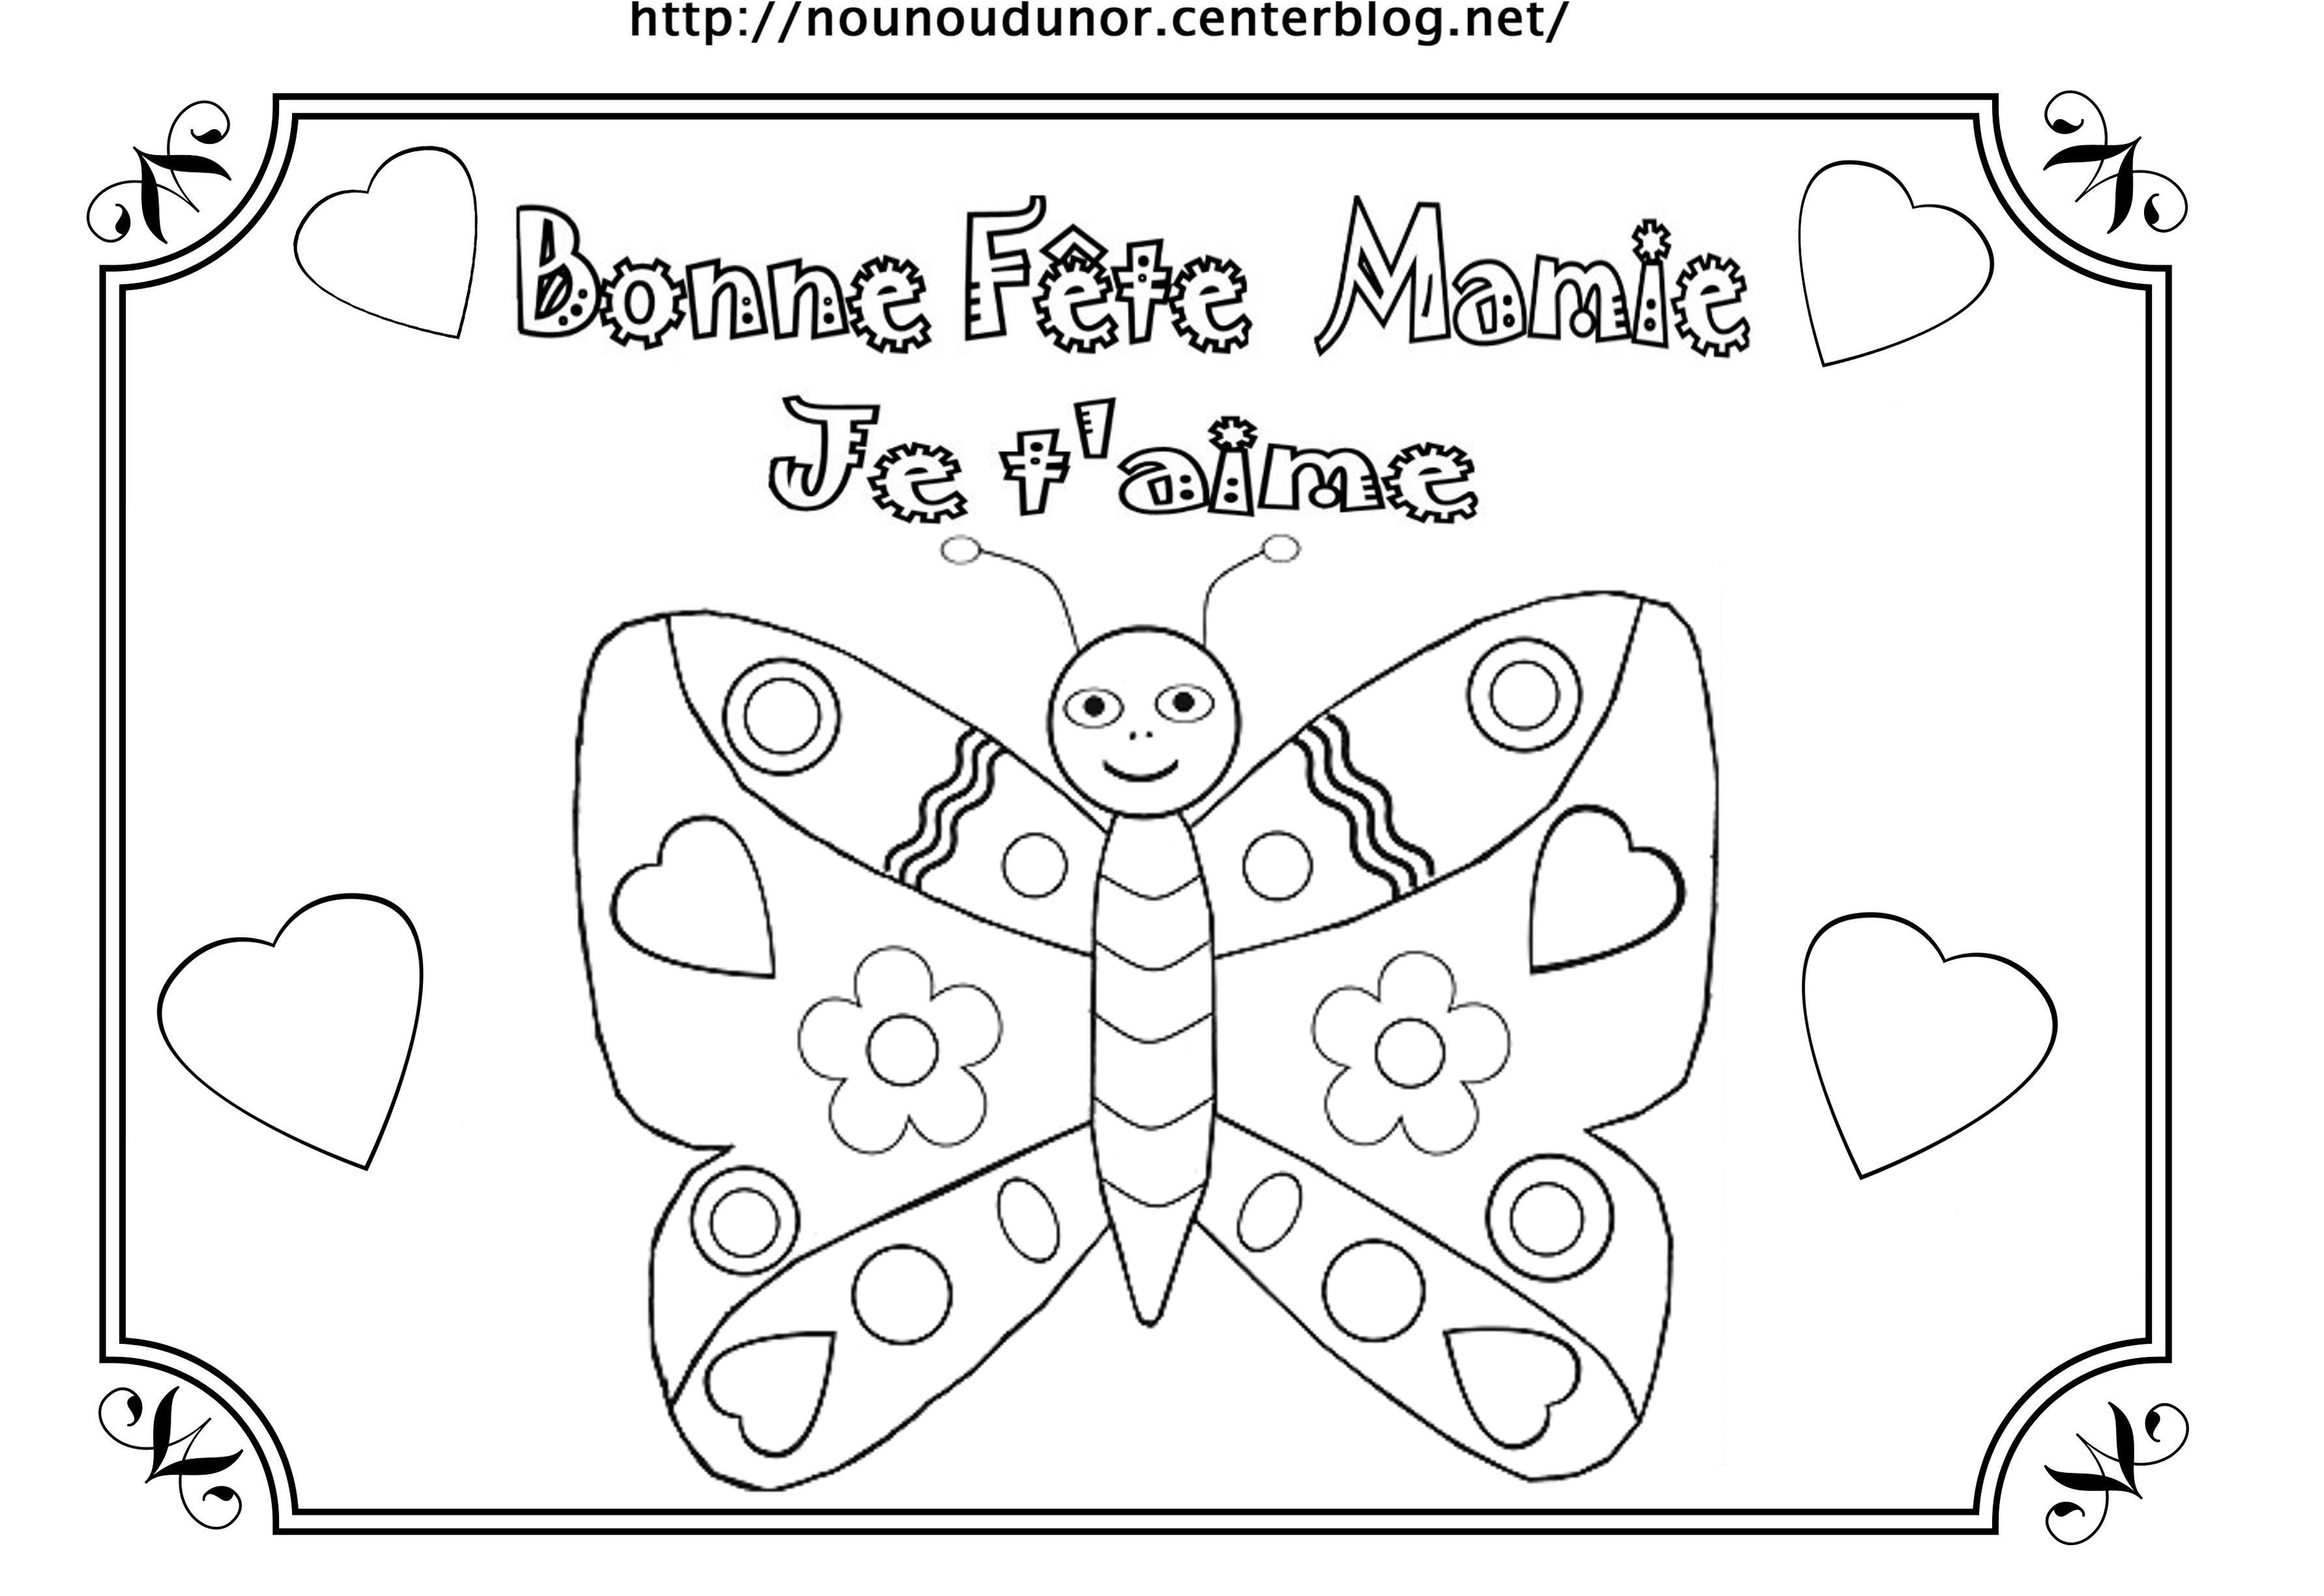 8 Incroyable Coloriage Anniversaire Mamie Pics En 2020 dedans Coloriage Anniversaire Mamie